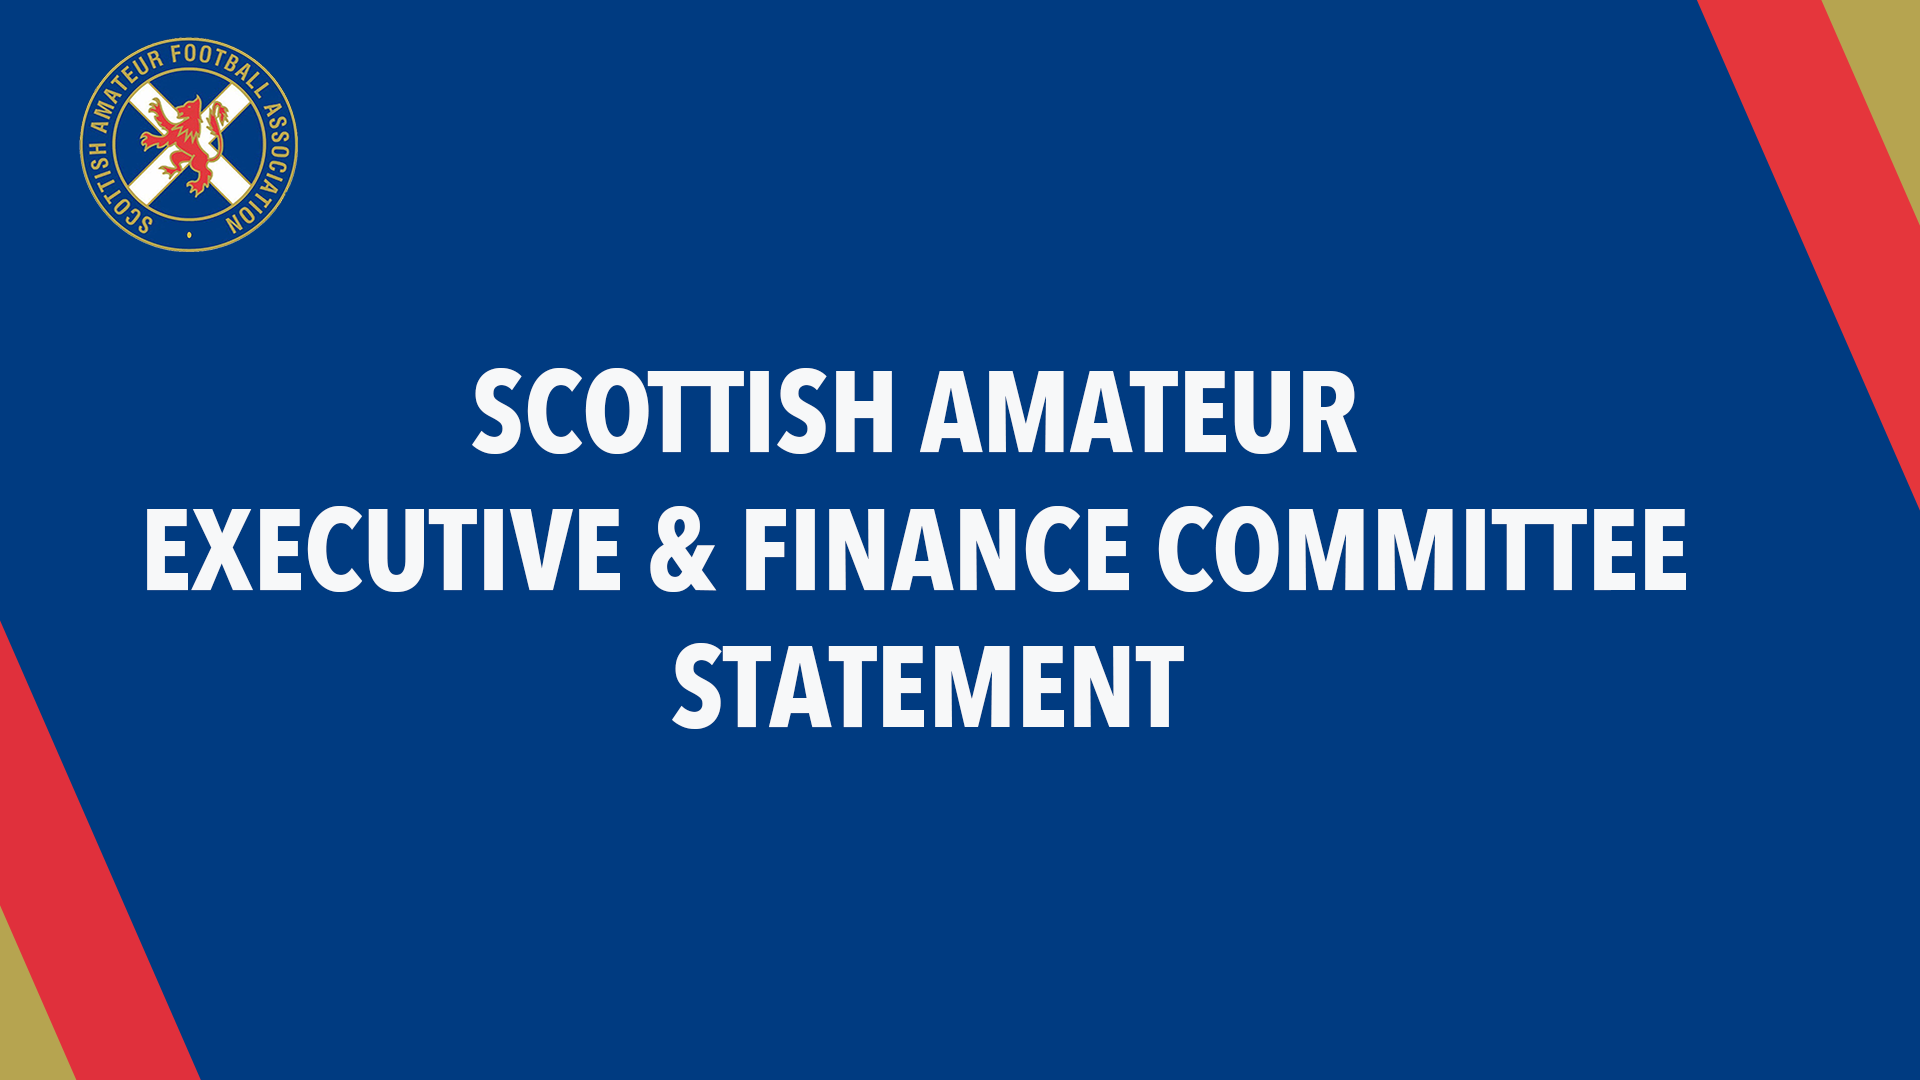 Scottish Amateur Executive & Finance Committee Statement